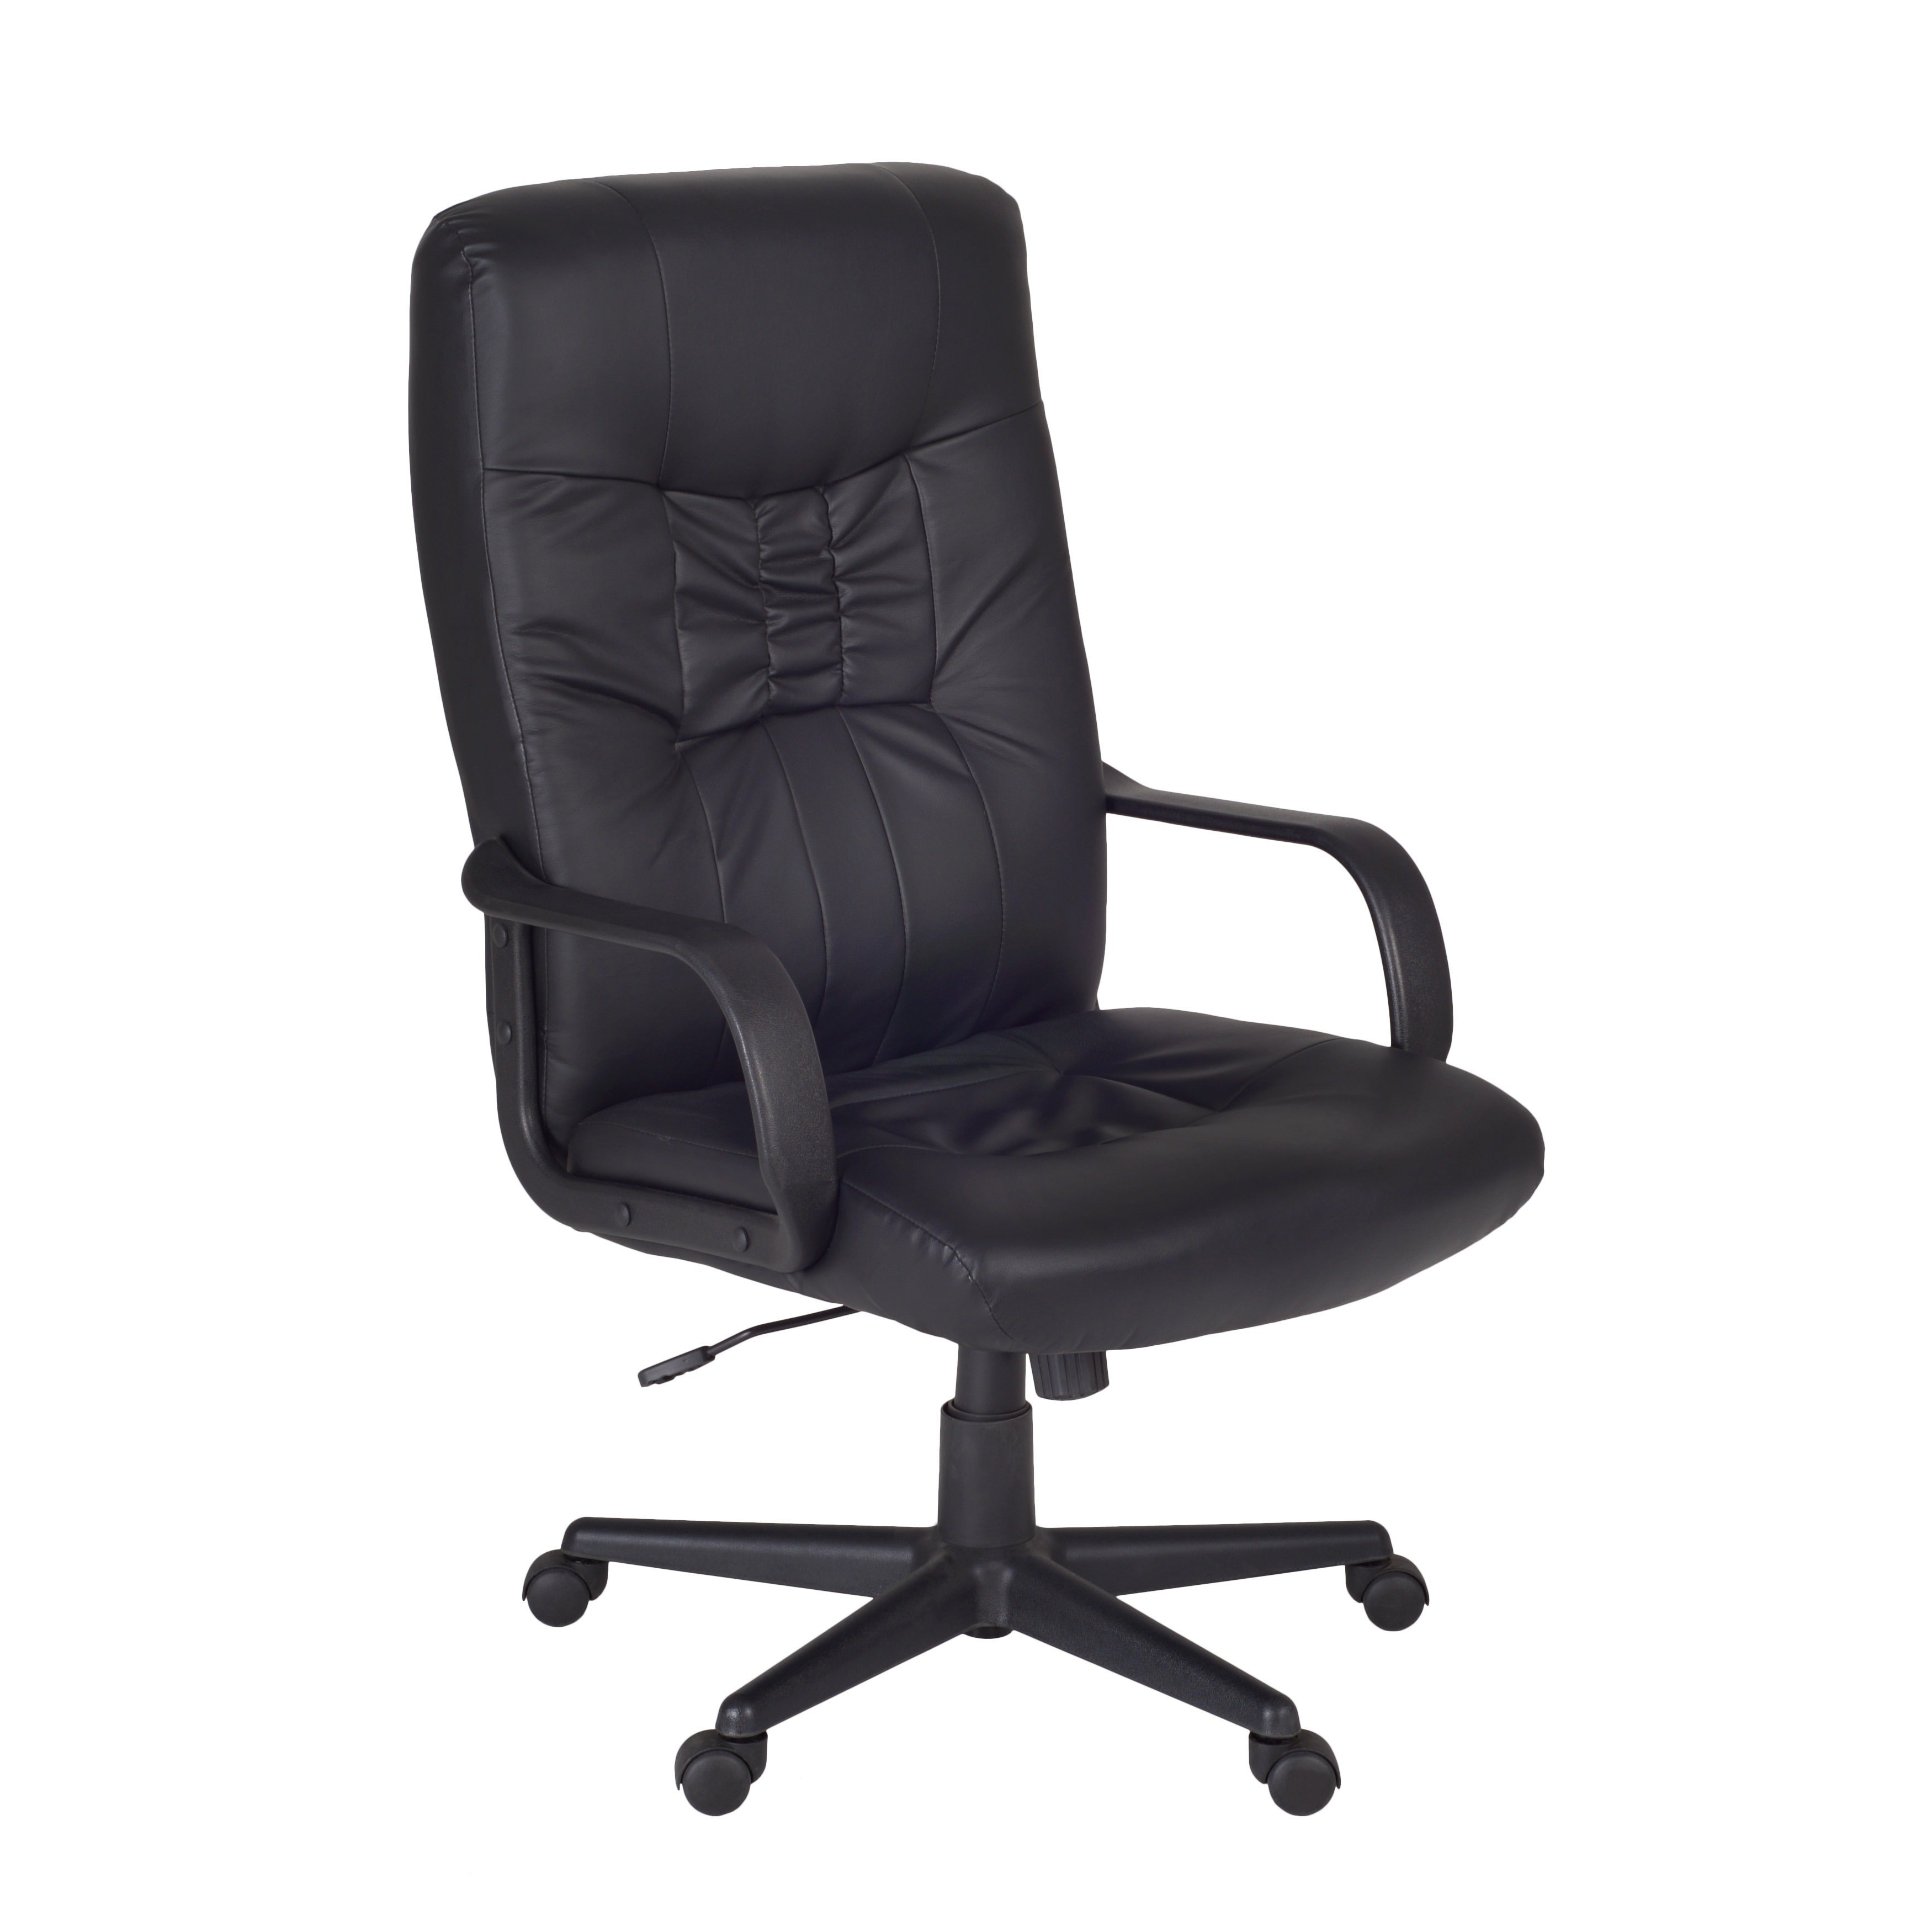 Regency Seating Posh Leather High Back Office Chair